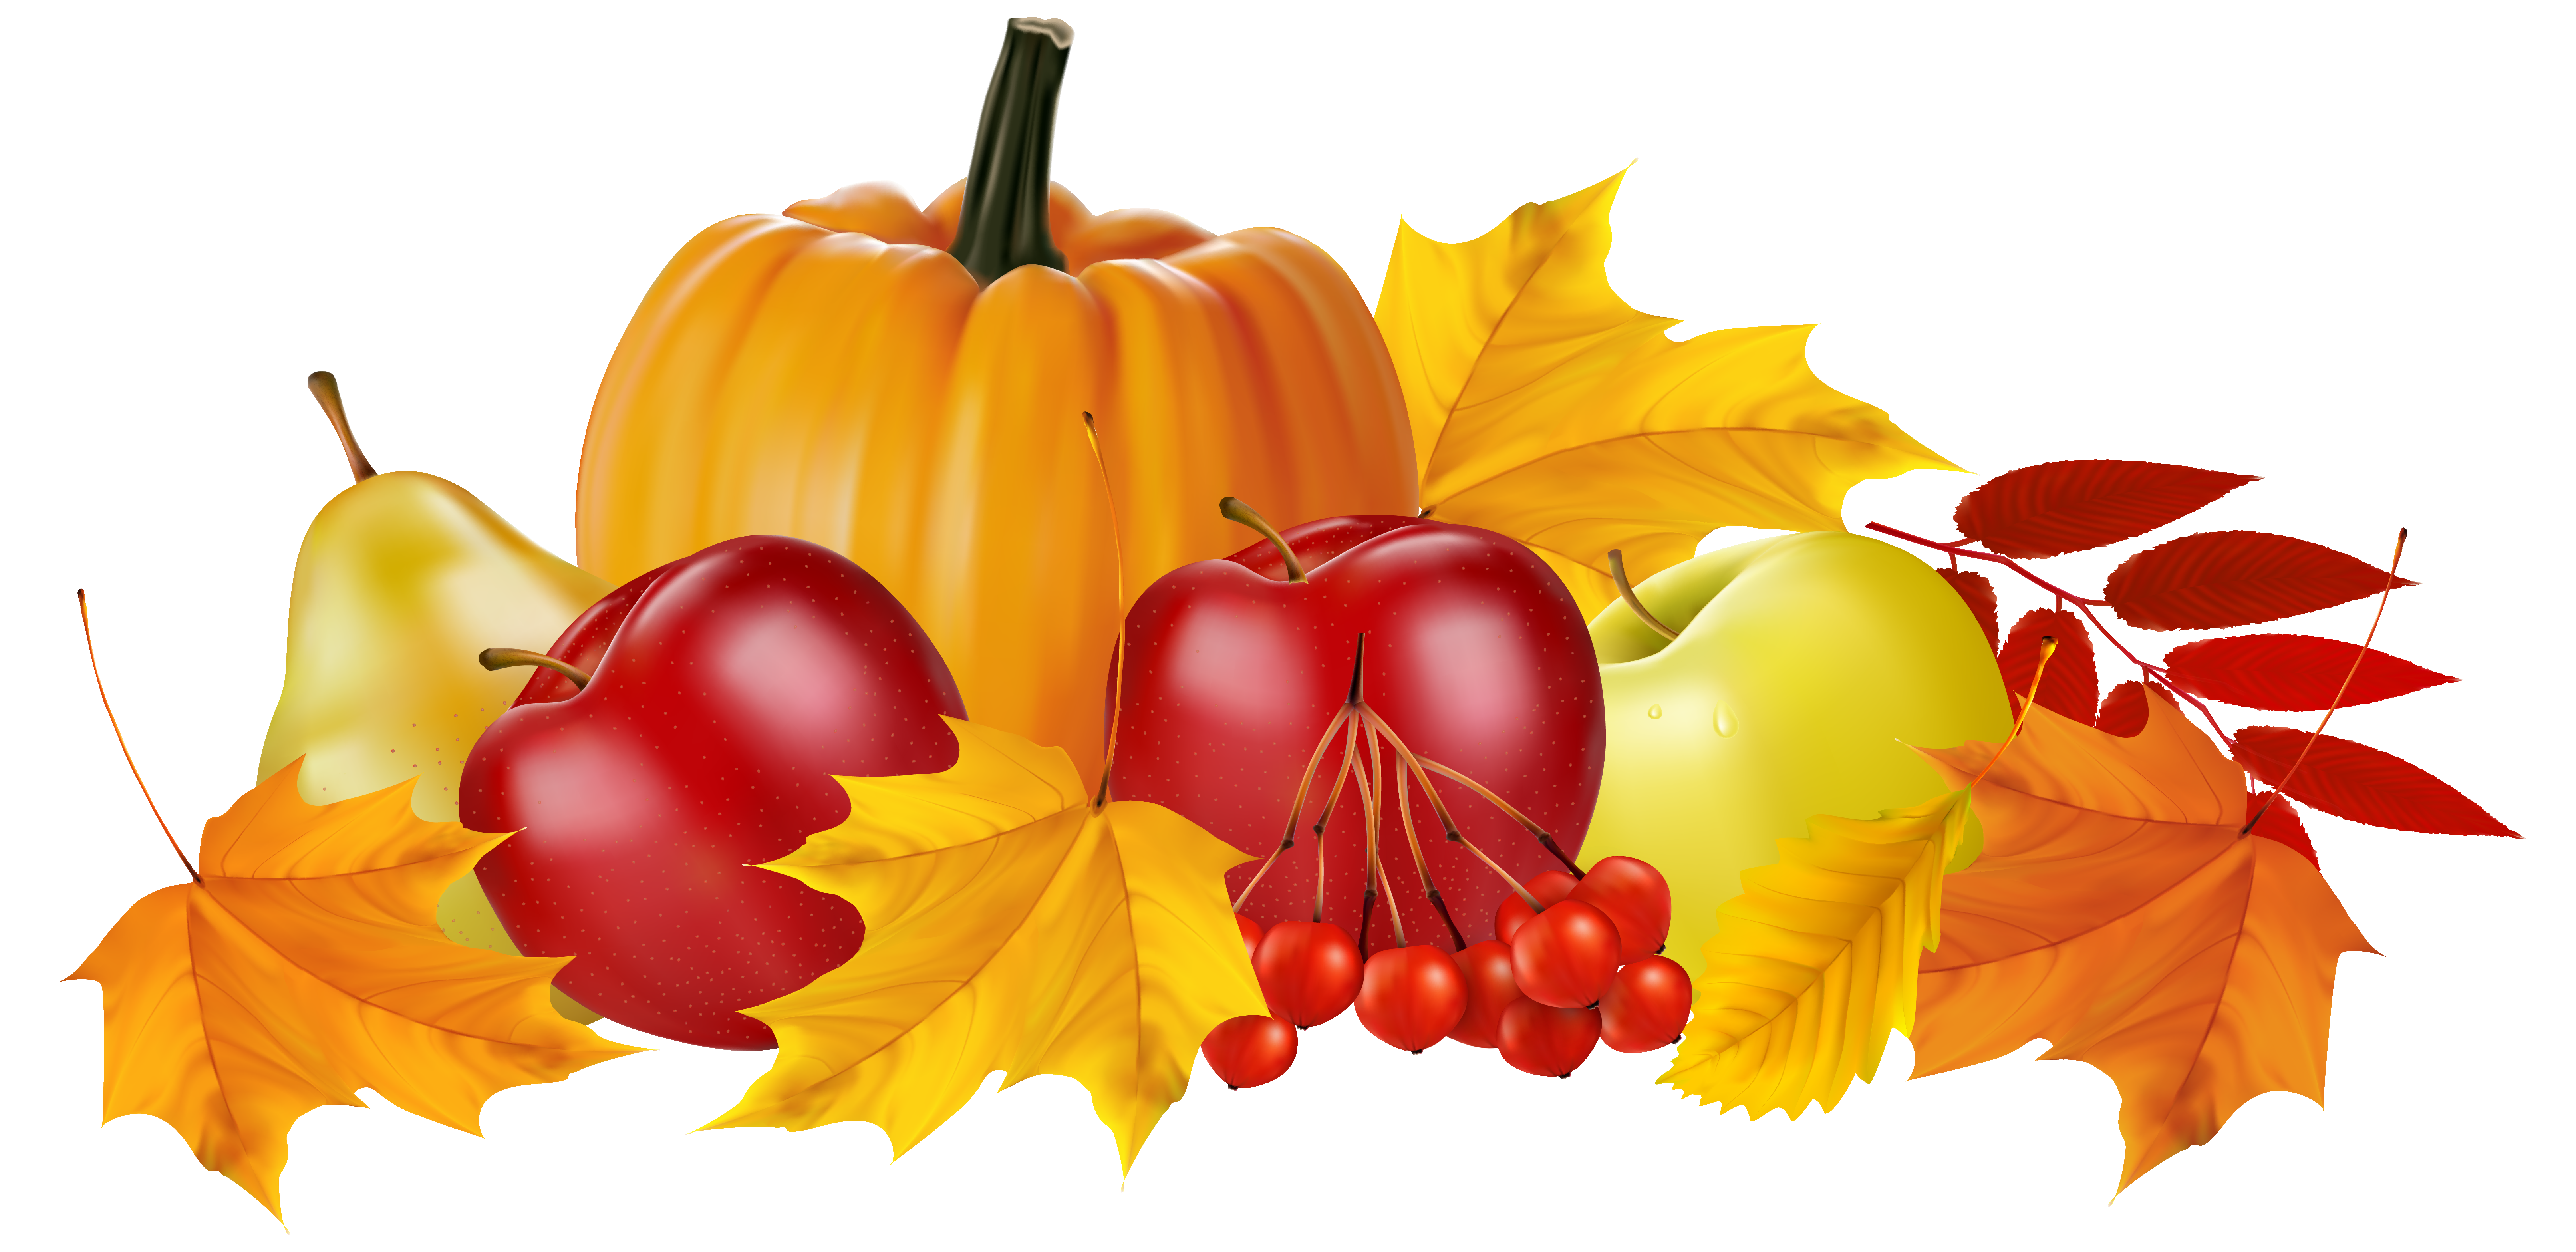 Autumn and fruits png. Pie clipart pumpkin spice